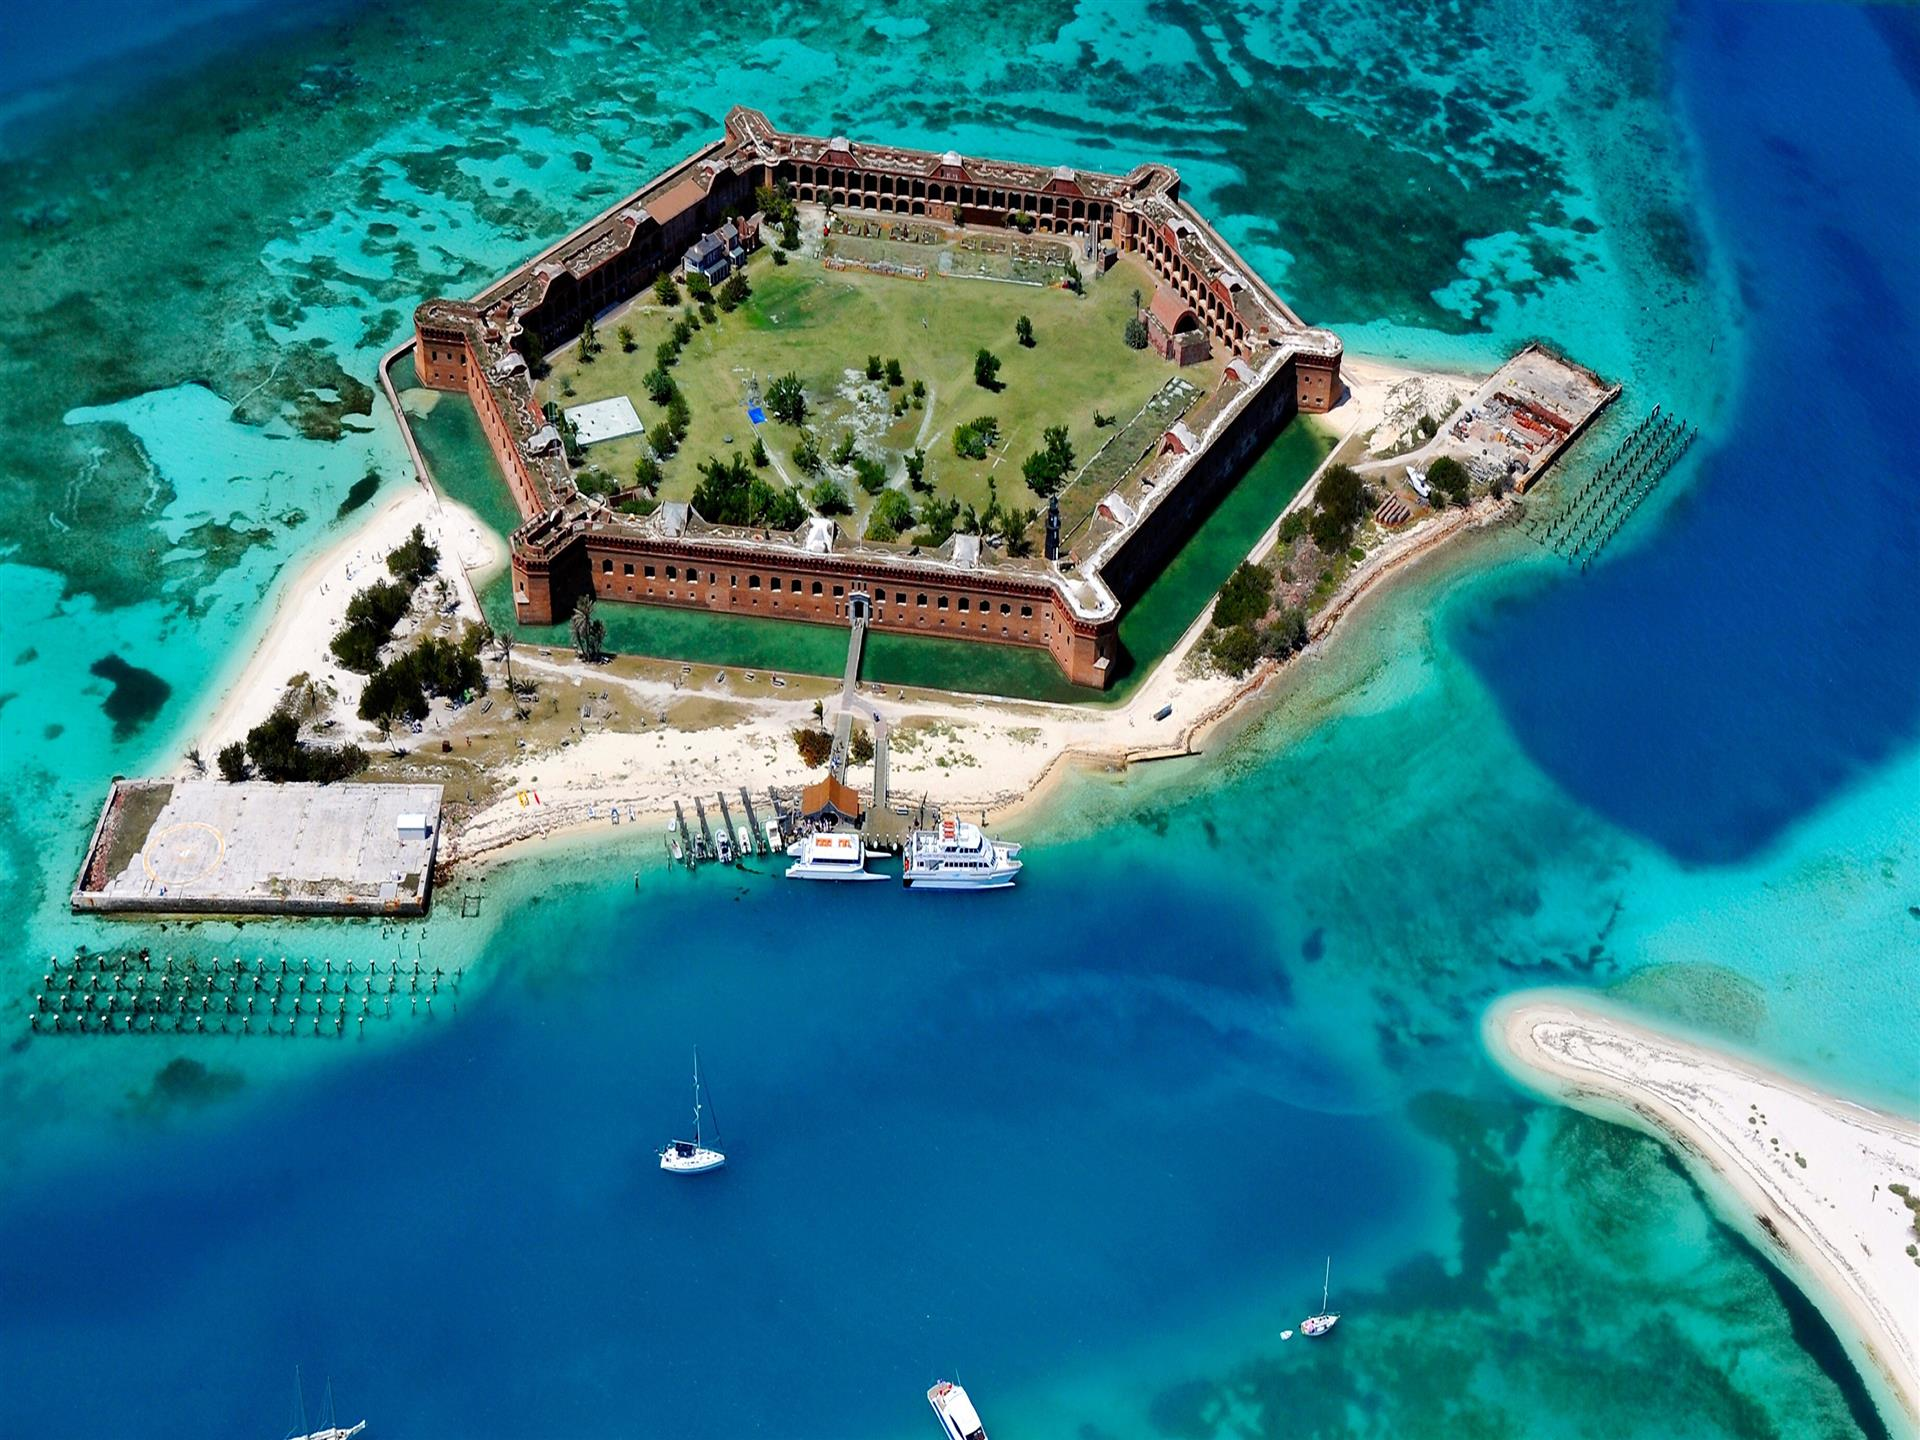 1920x1440 Dry Tortugas Island Group in Florida 4K Wallpaper